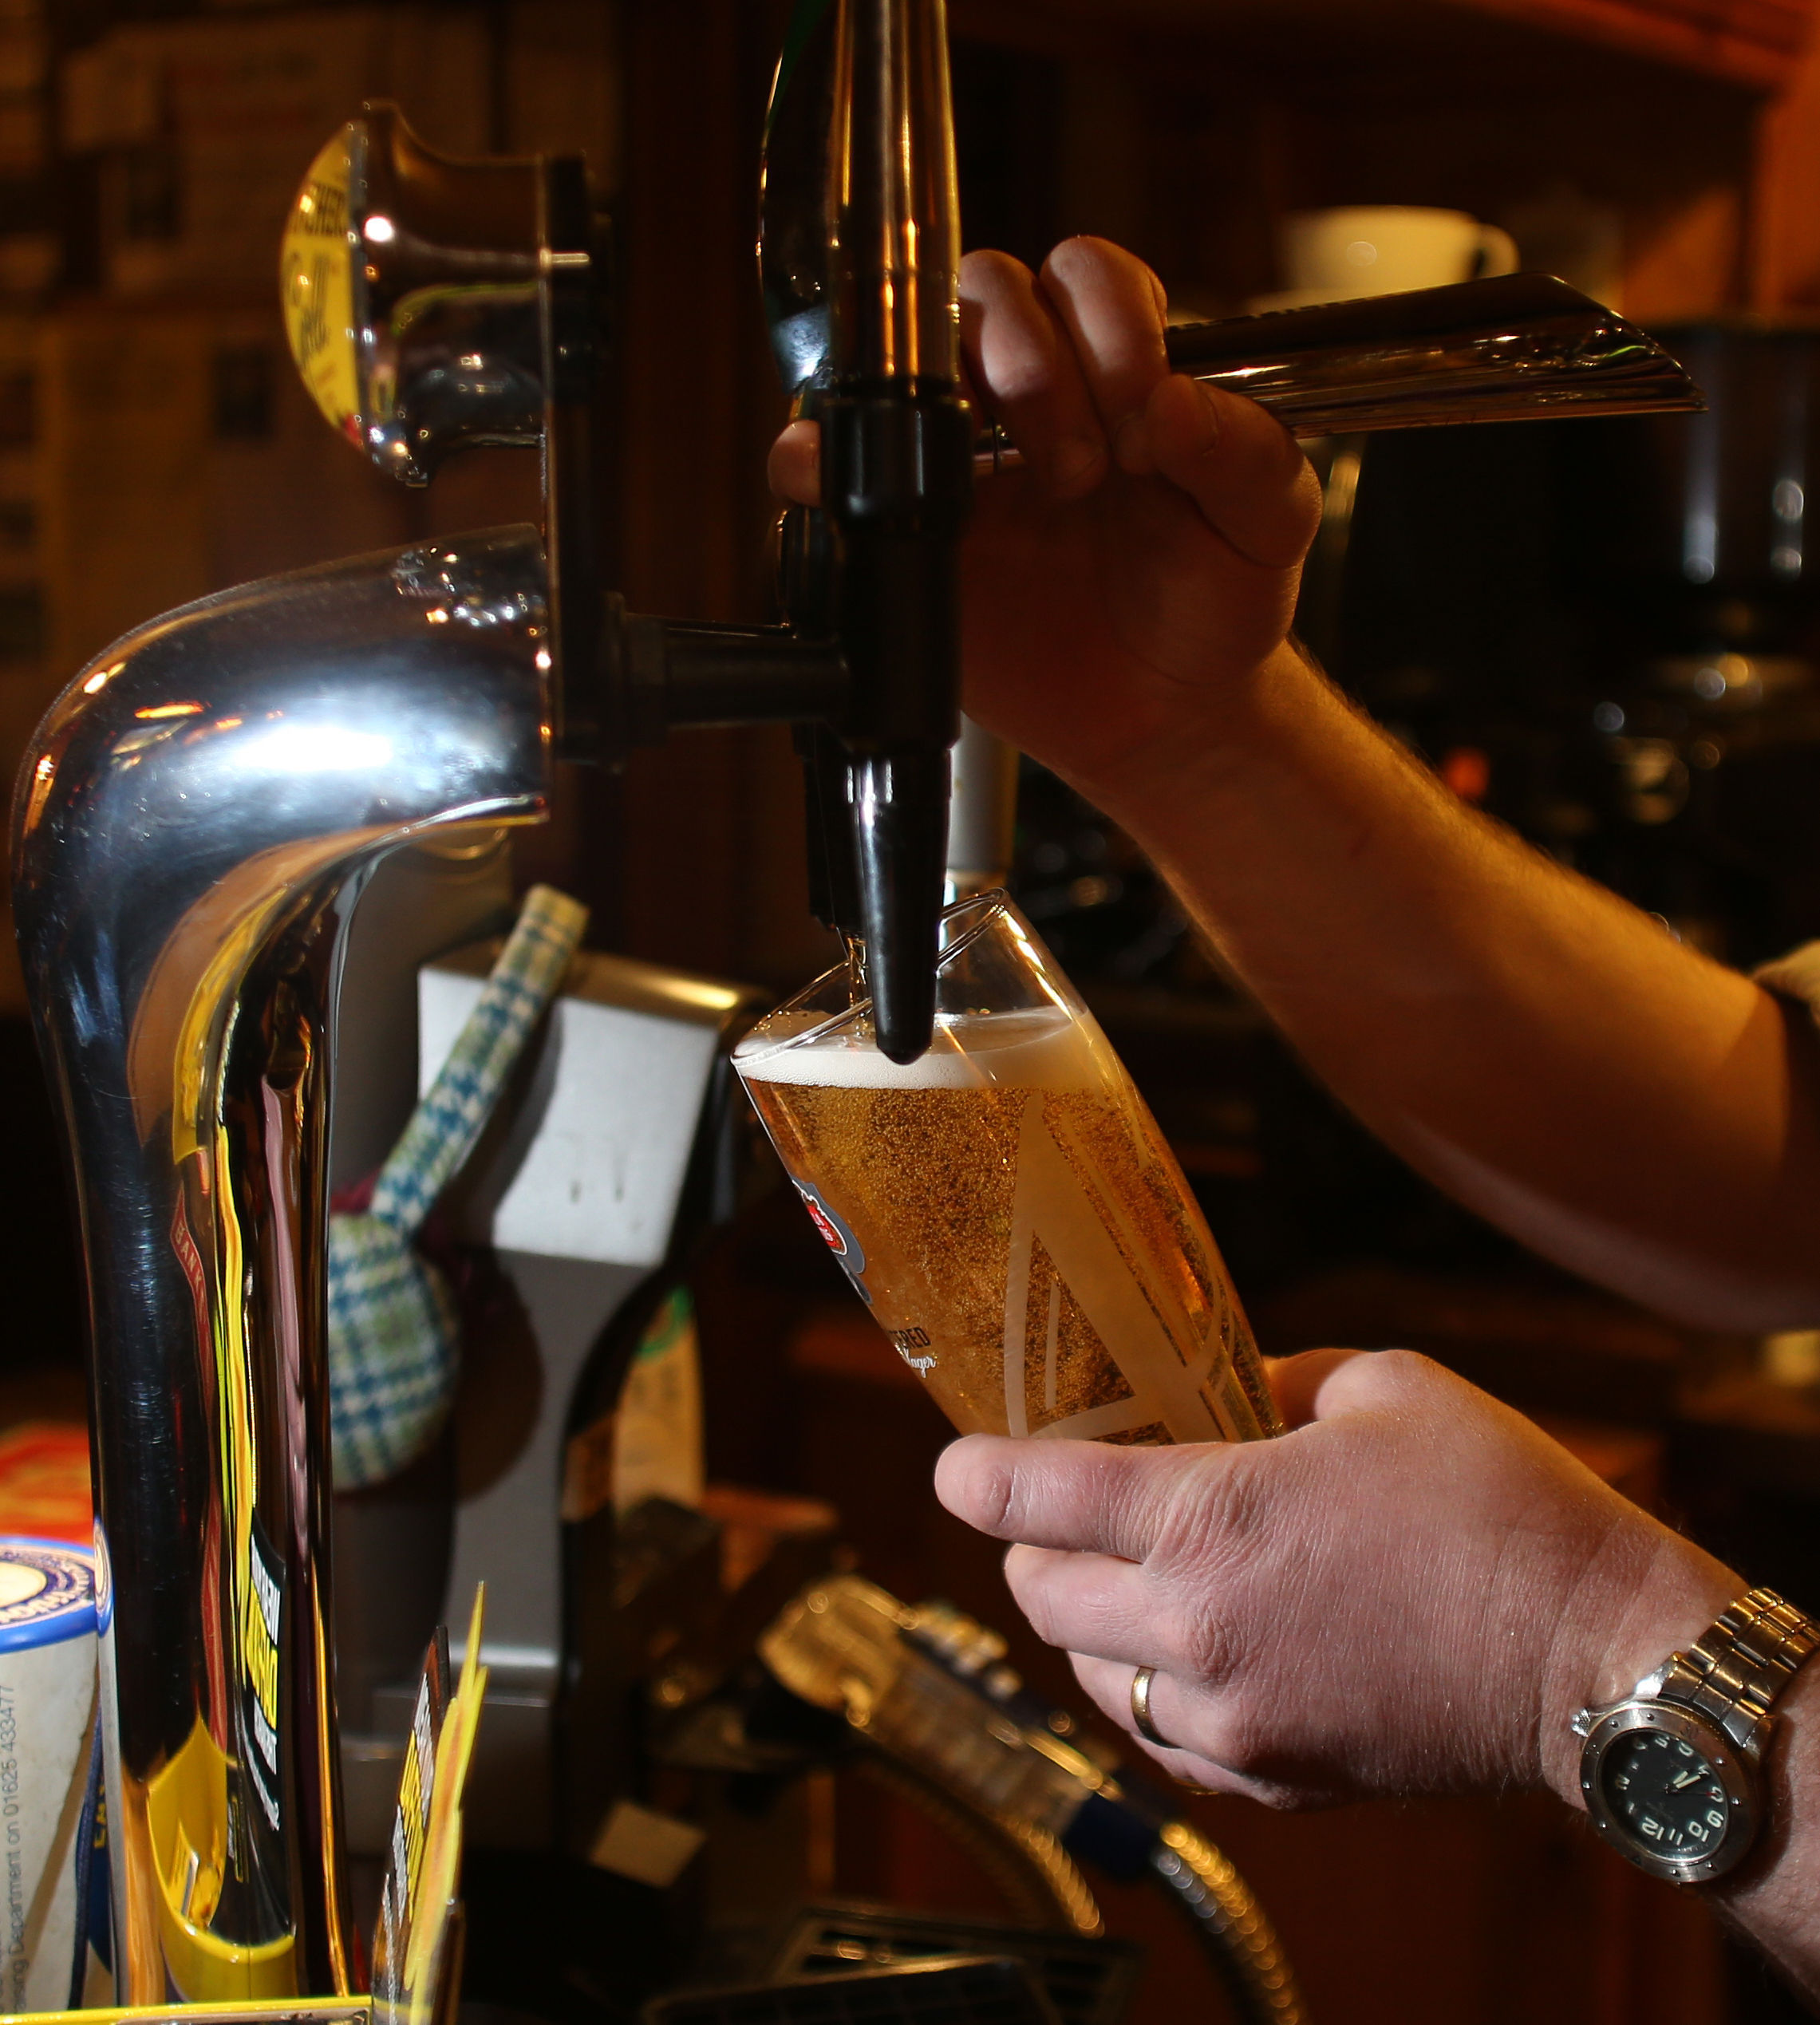 File photo dated 18/3/2013 of a pint of lager being pulled in a pub. Chancellor of the Exchequer George Osborne delivers his Budget Statement to MPs in the House of Commons, London.  PRESS ASSOCIATION Photo. Issue date: Wednesday March 16, 2016. See PA BU